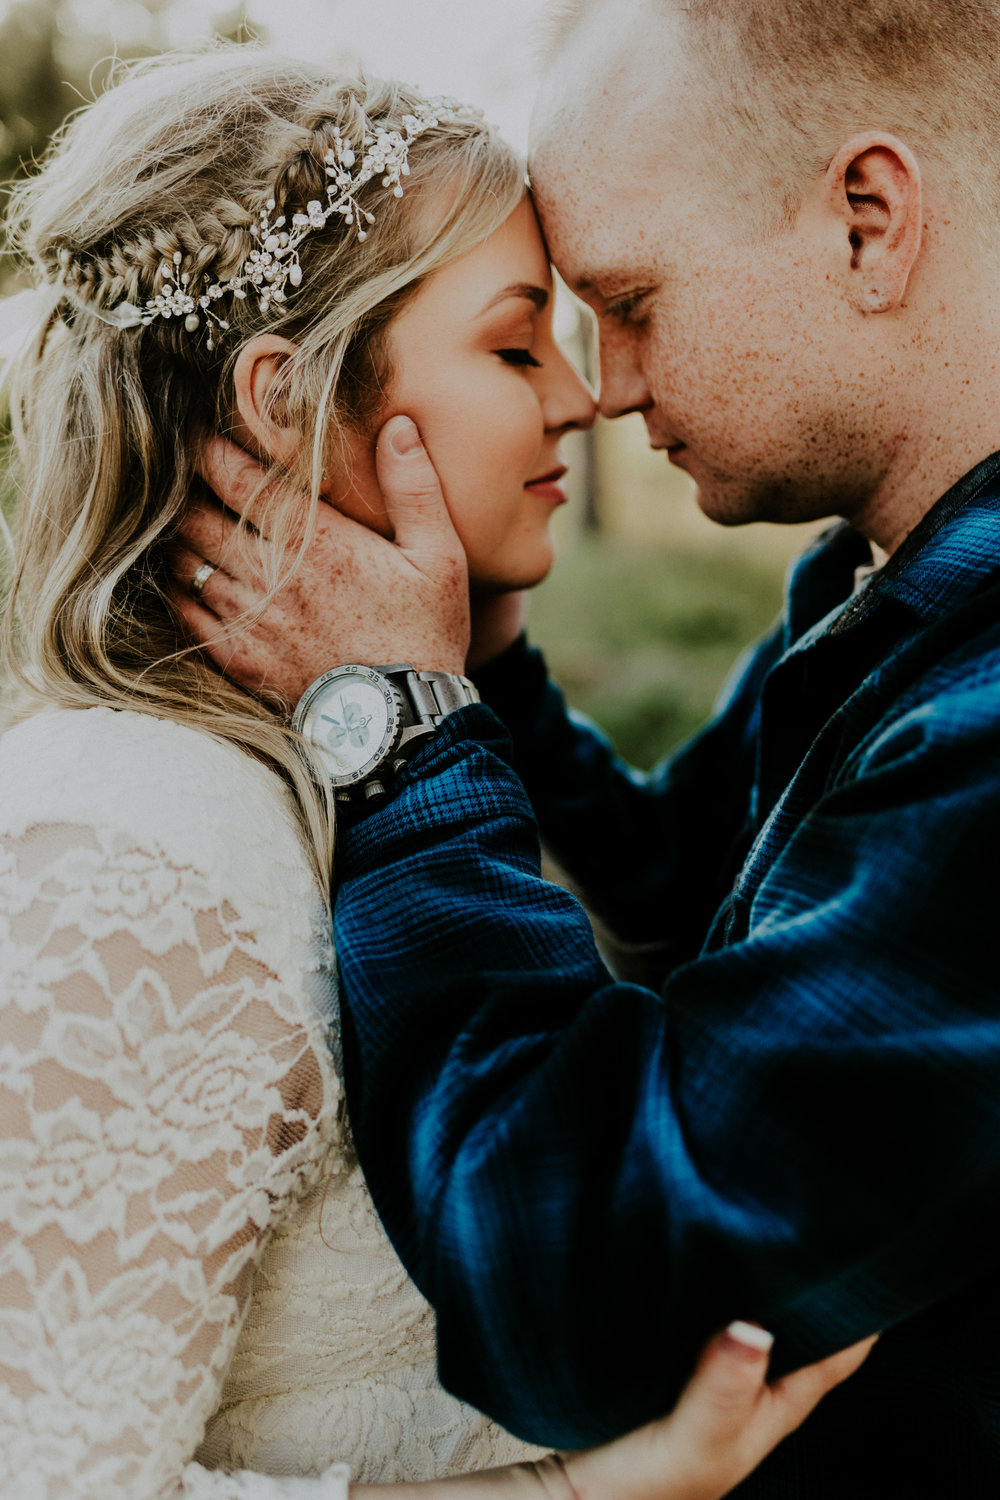 Man kissing his fiance's forehead